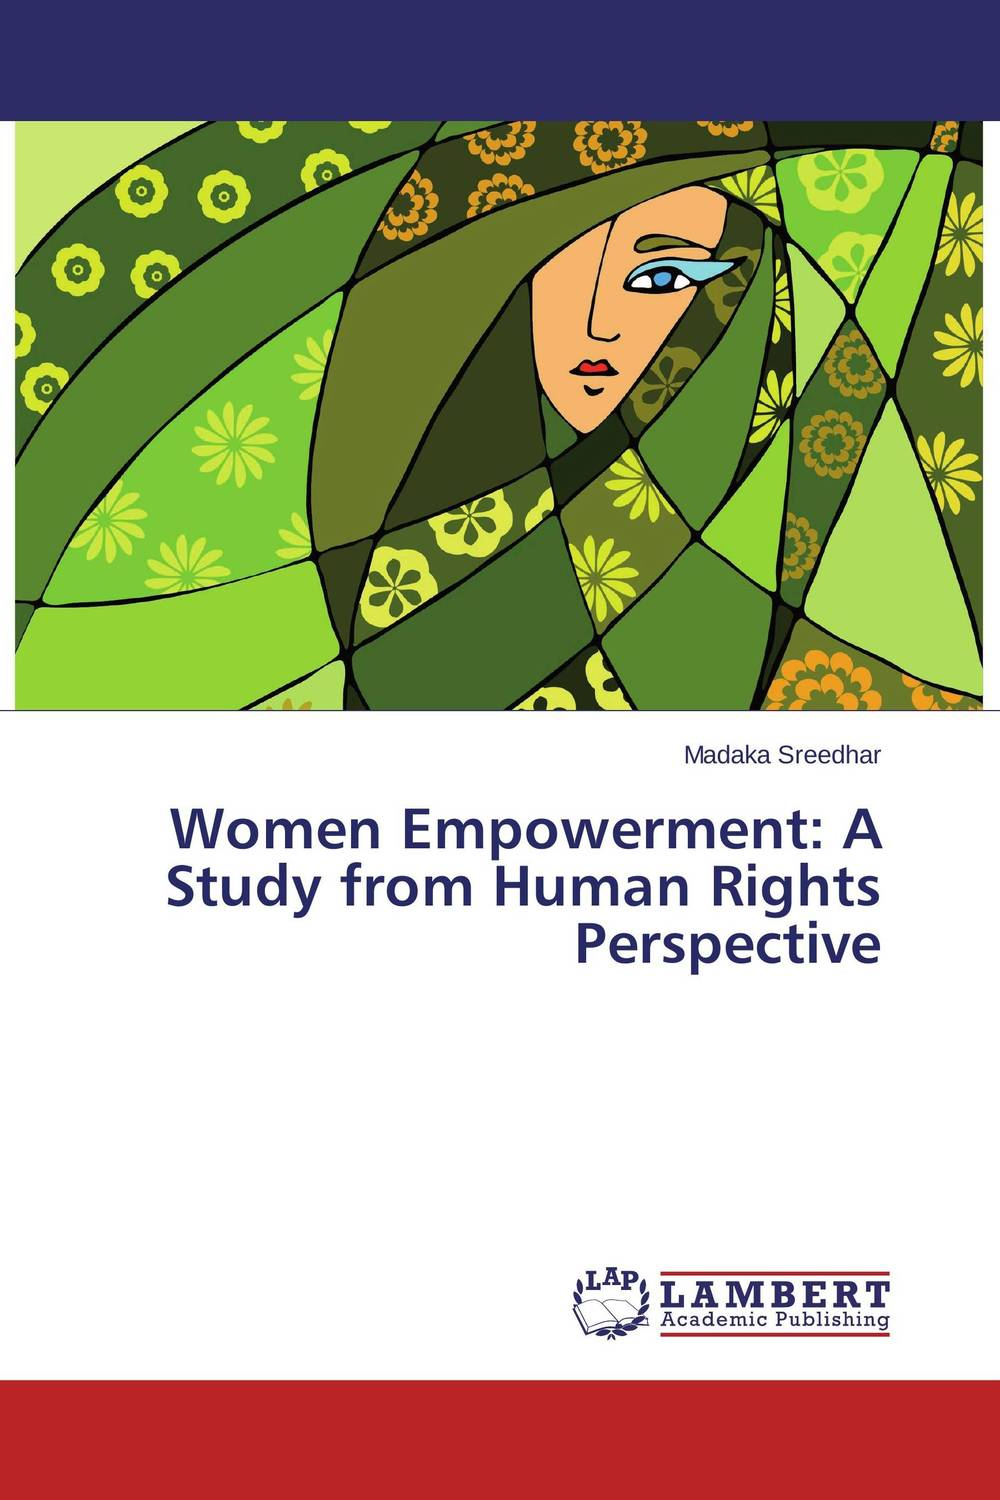 цены Women Empowerment: A Study from Human Rights Perspective